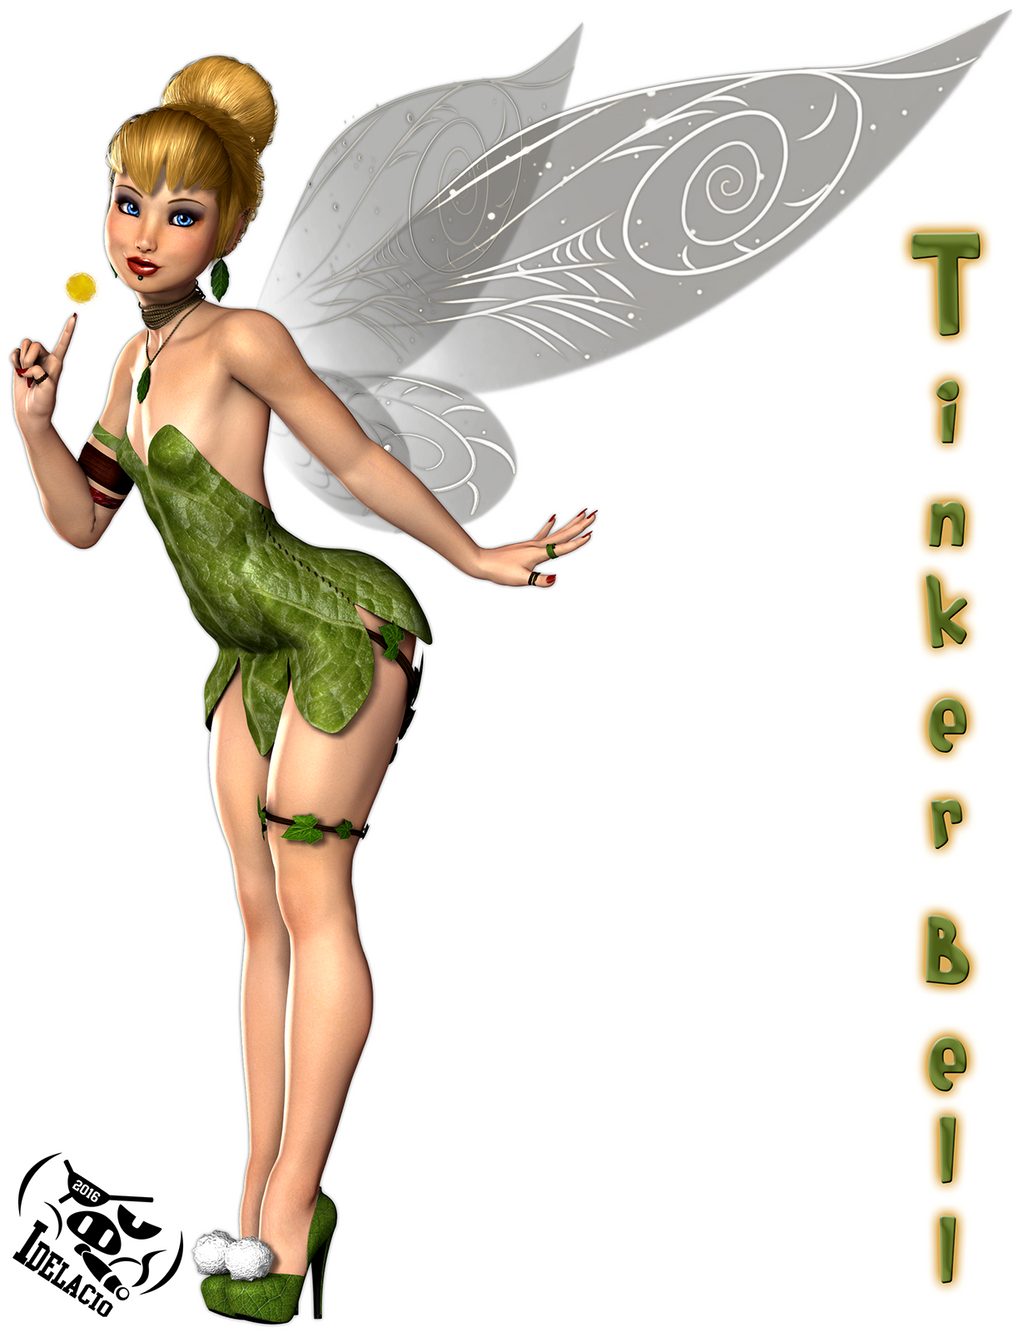 Tinkerbell softcore pictures